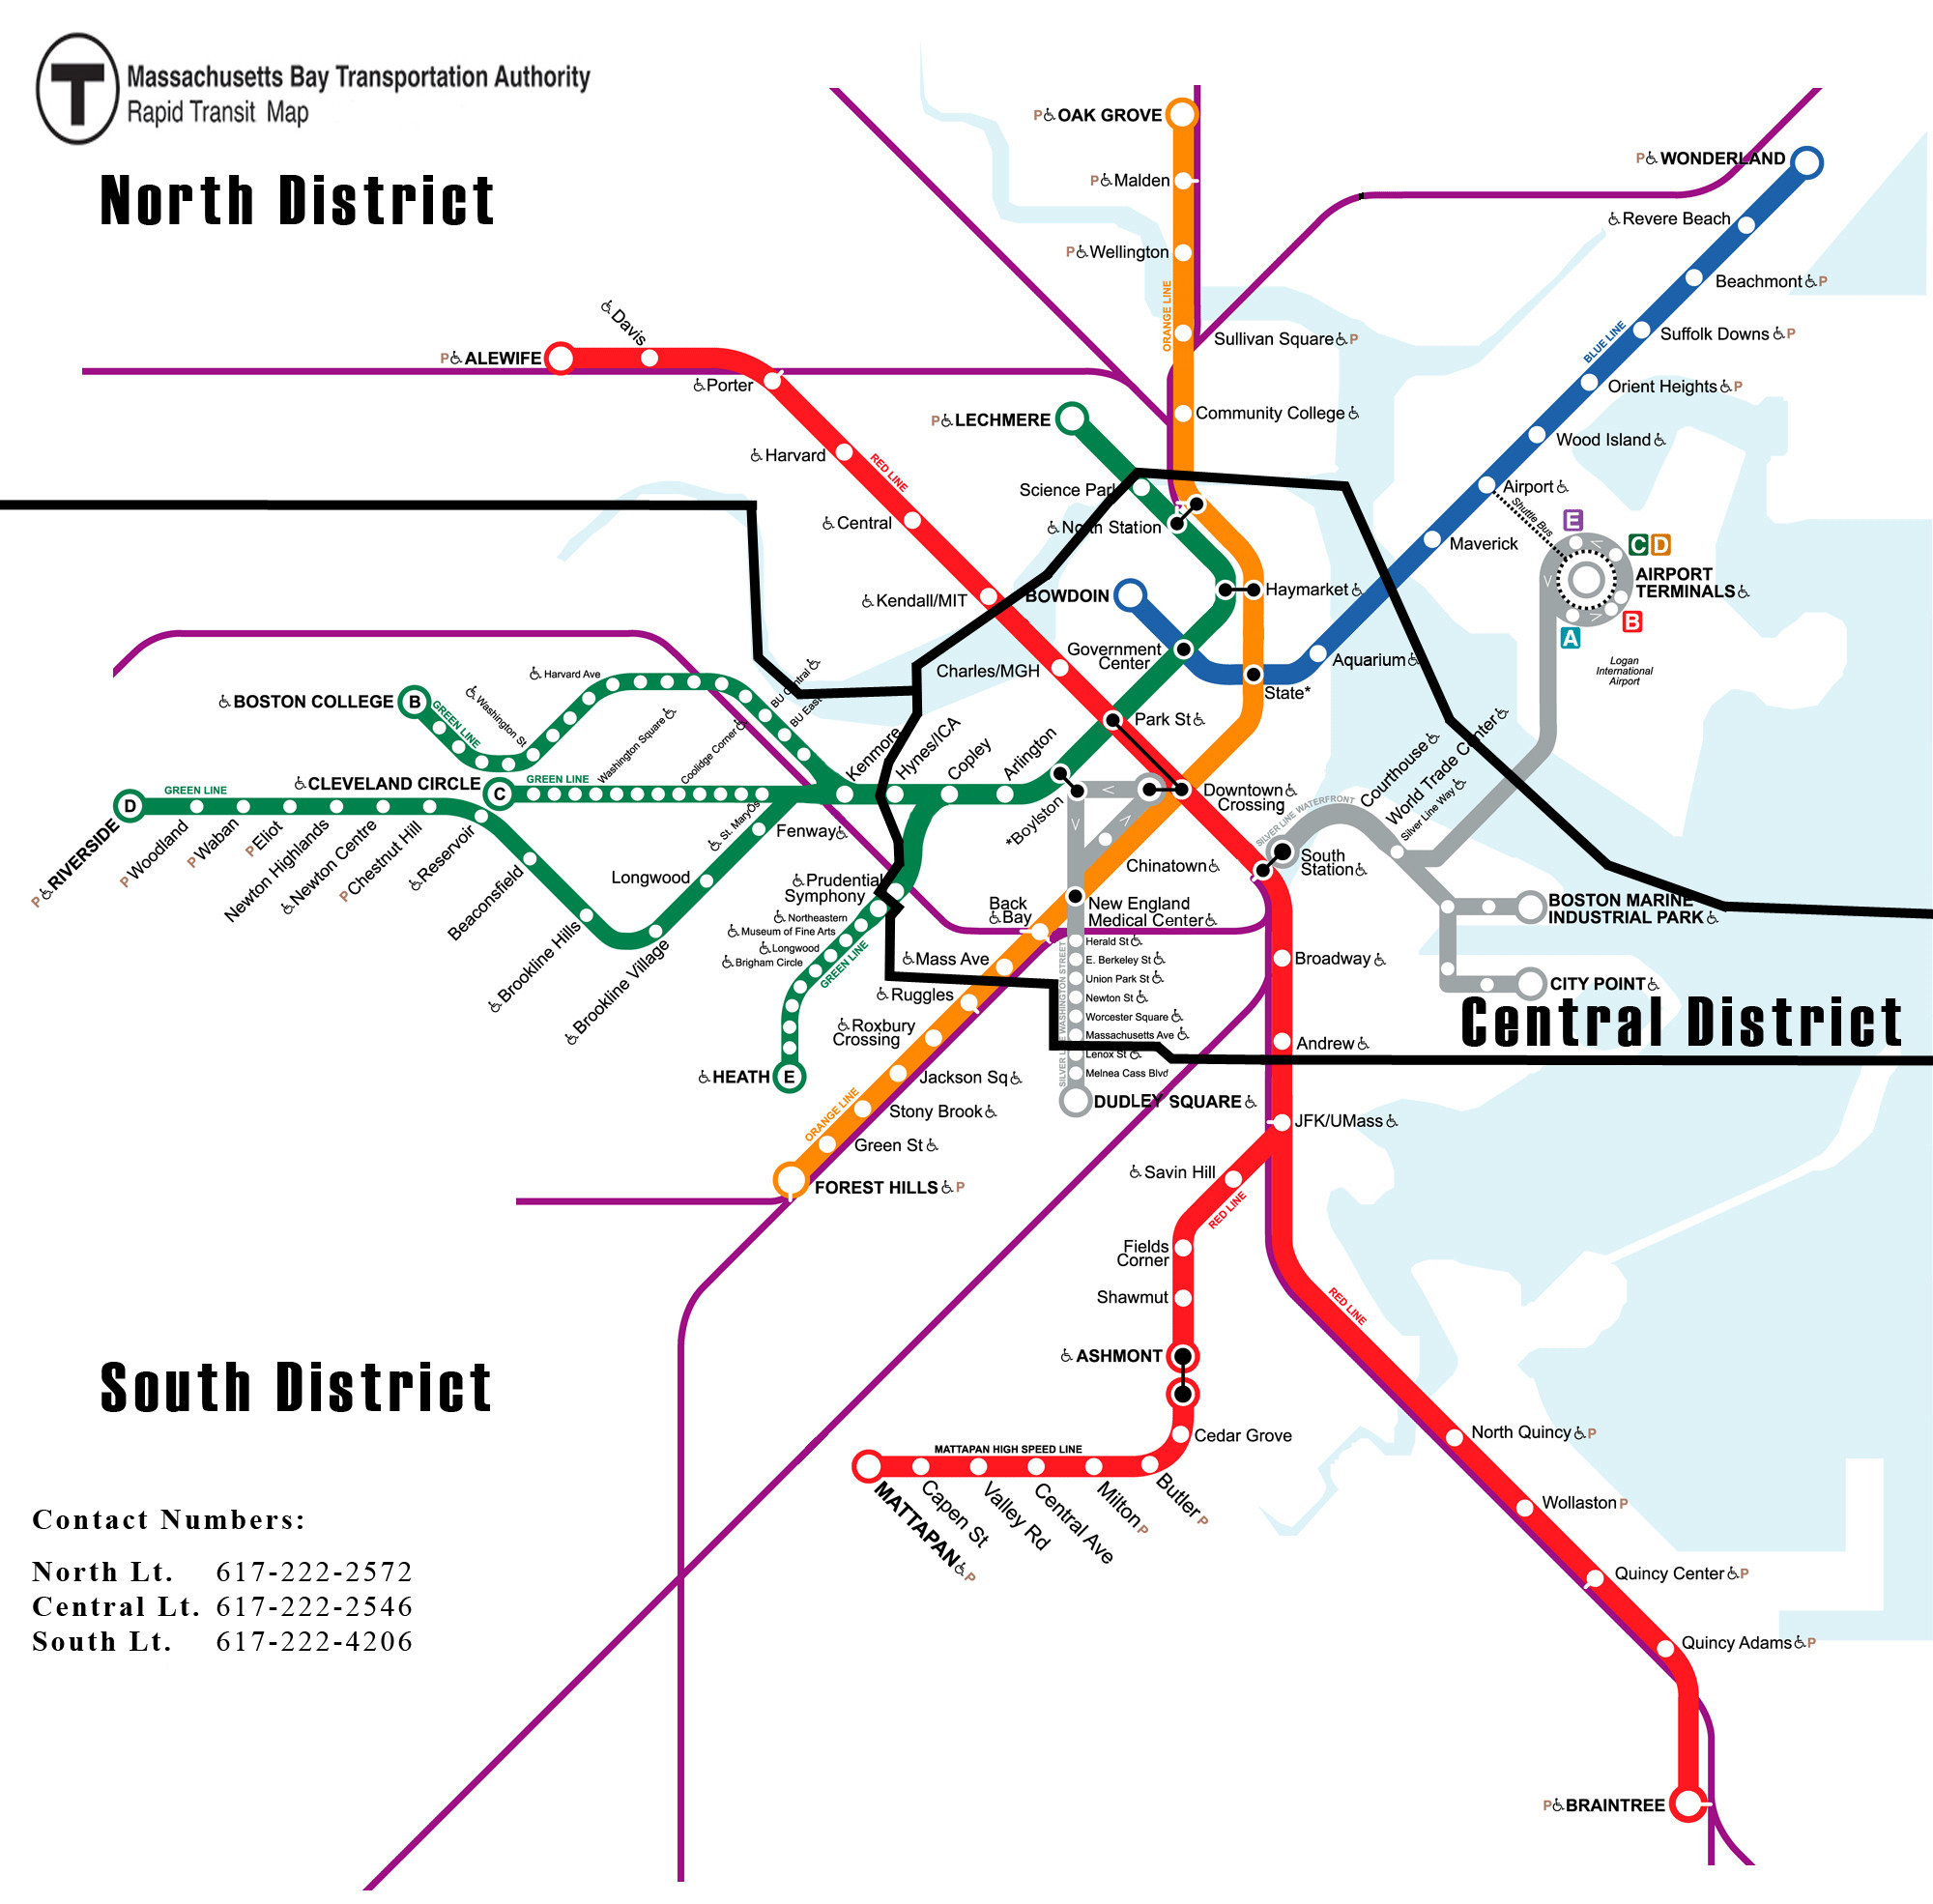 Subway System Map with North, Central, and South District borders